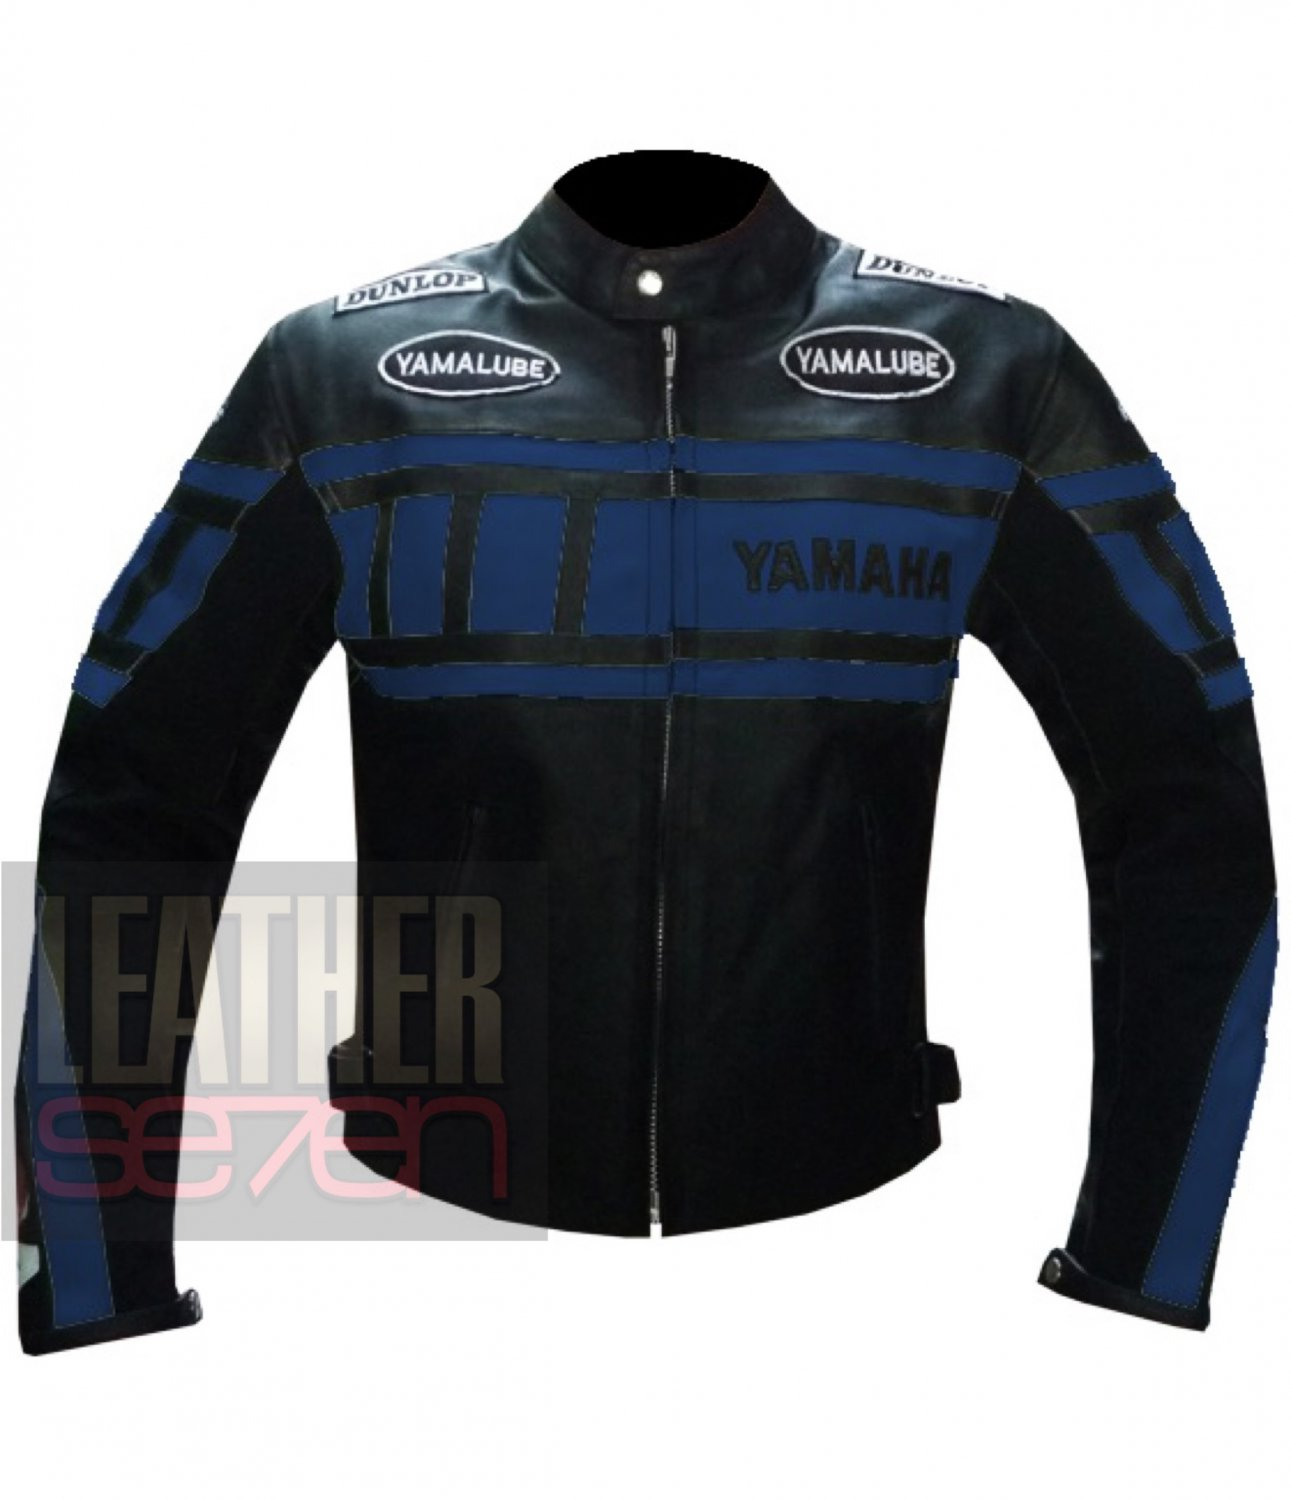 New Classic Safety And Pure Cowhide Leather Coat .. Yamaha 0120 Navy Blue Jacket